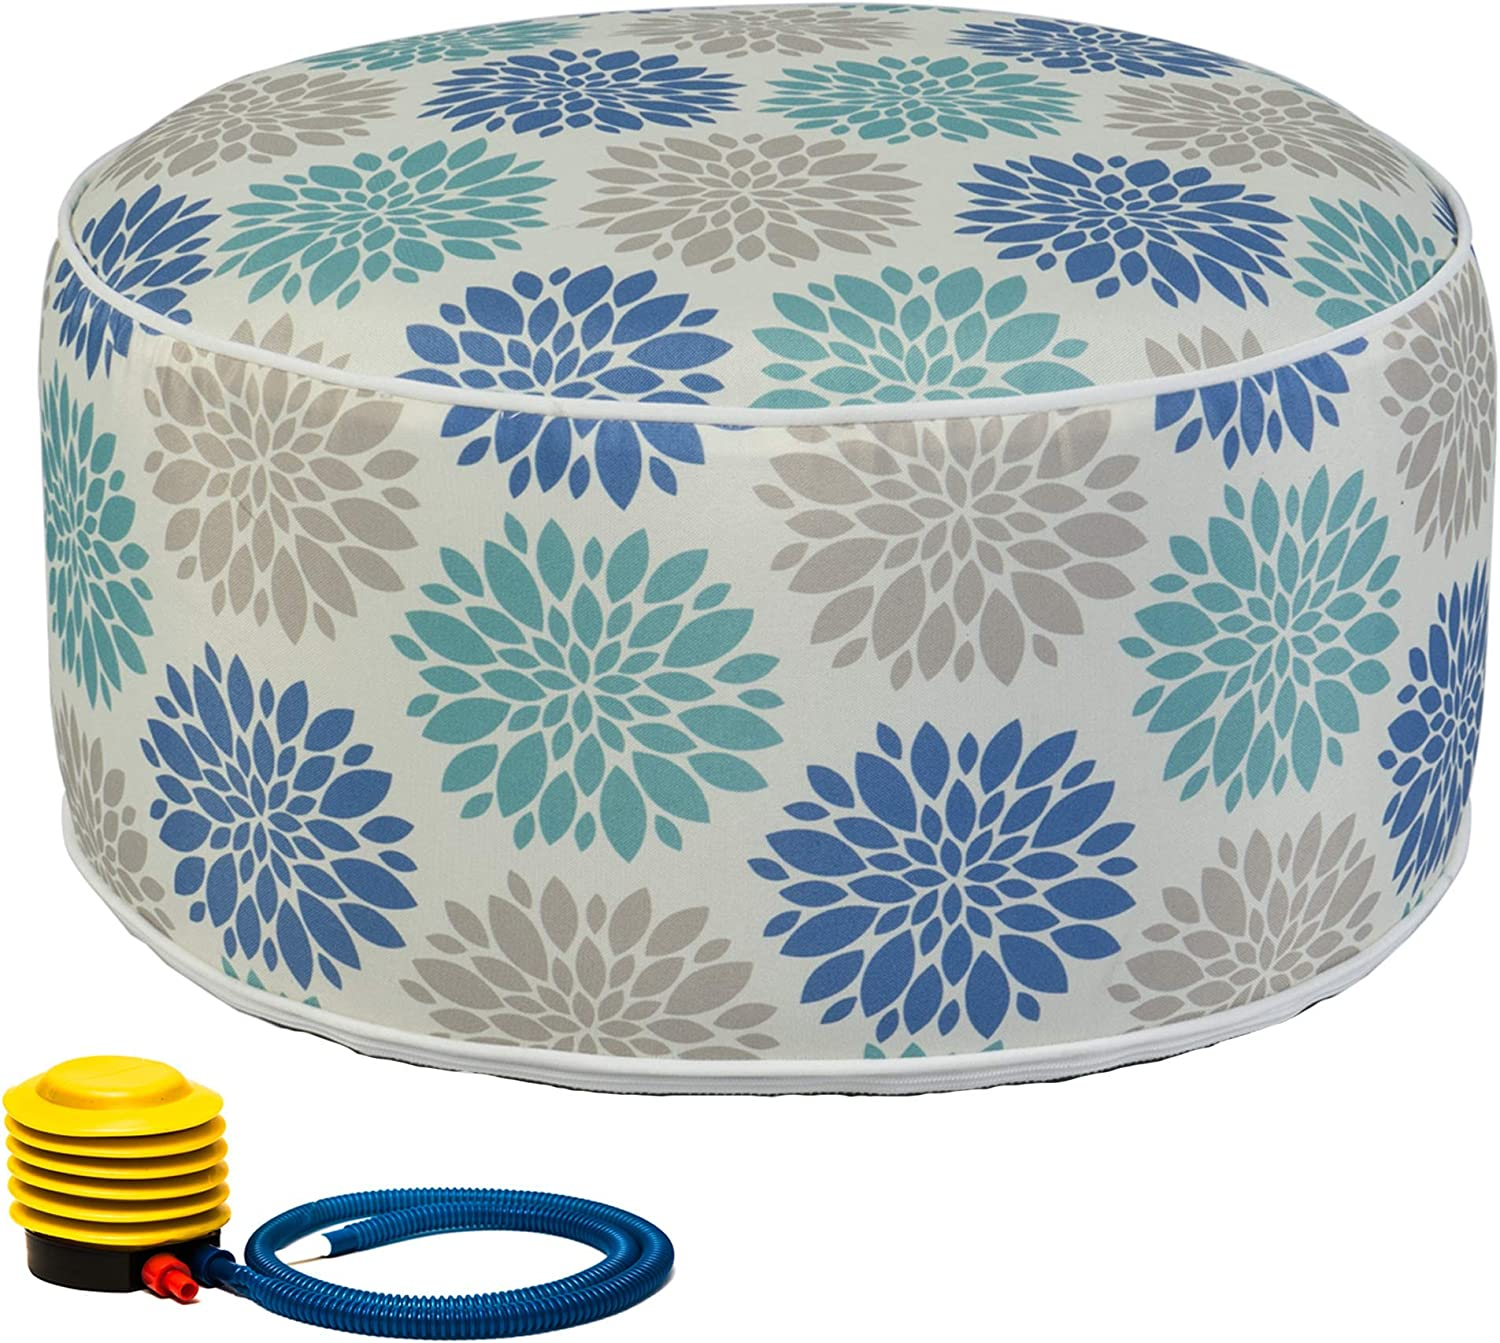 Kozyard Inflatable Stool Ottoman Used for Indoor or Outdoor, Kids or Adults, Camping or Home (Cool Calm)